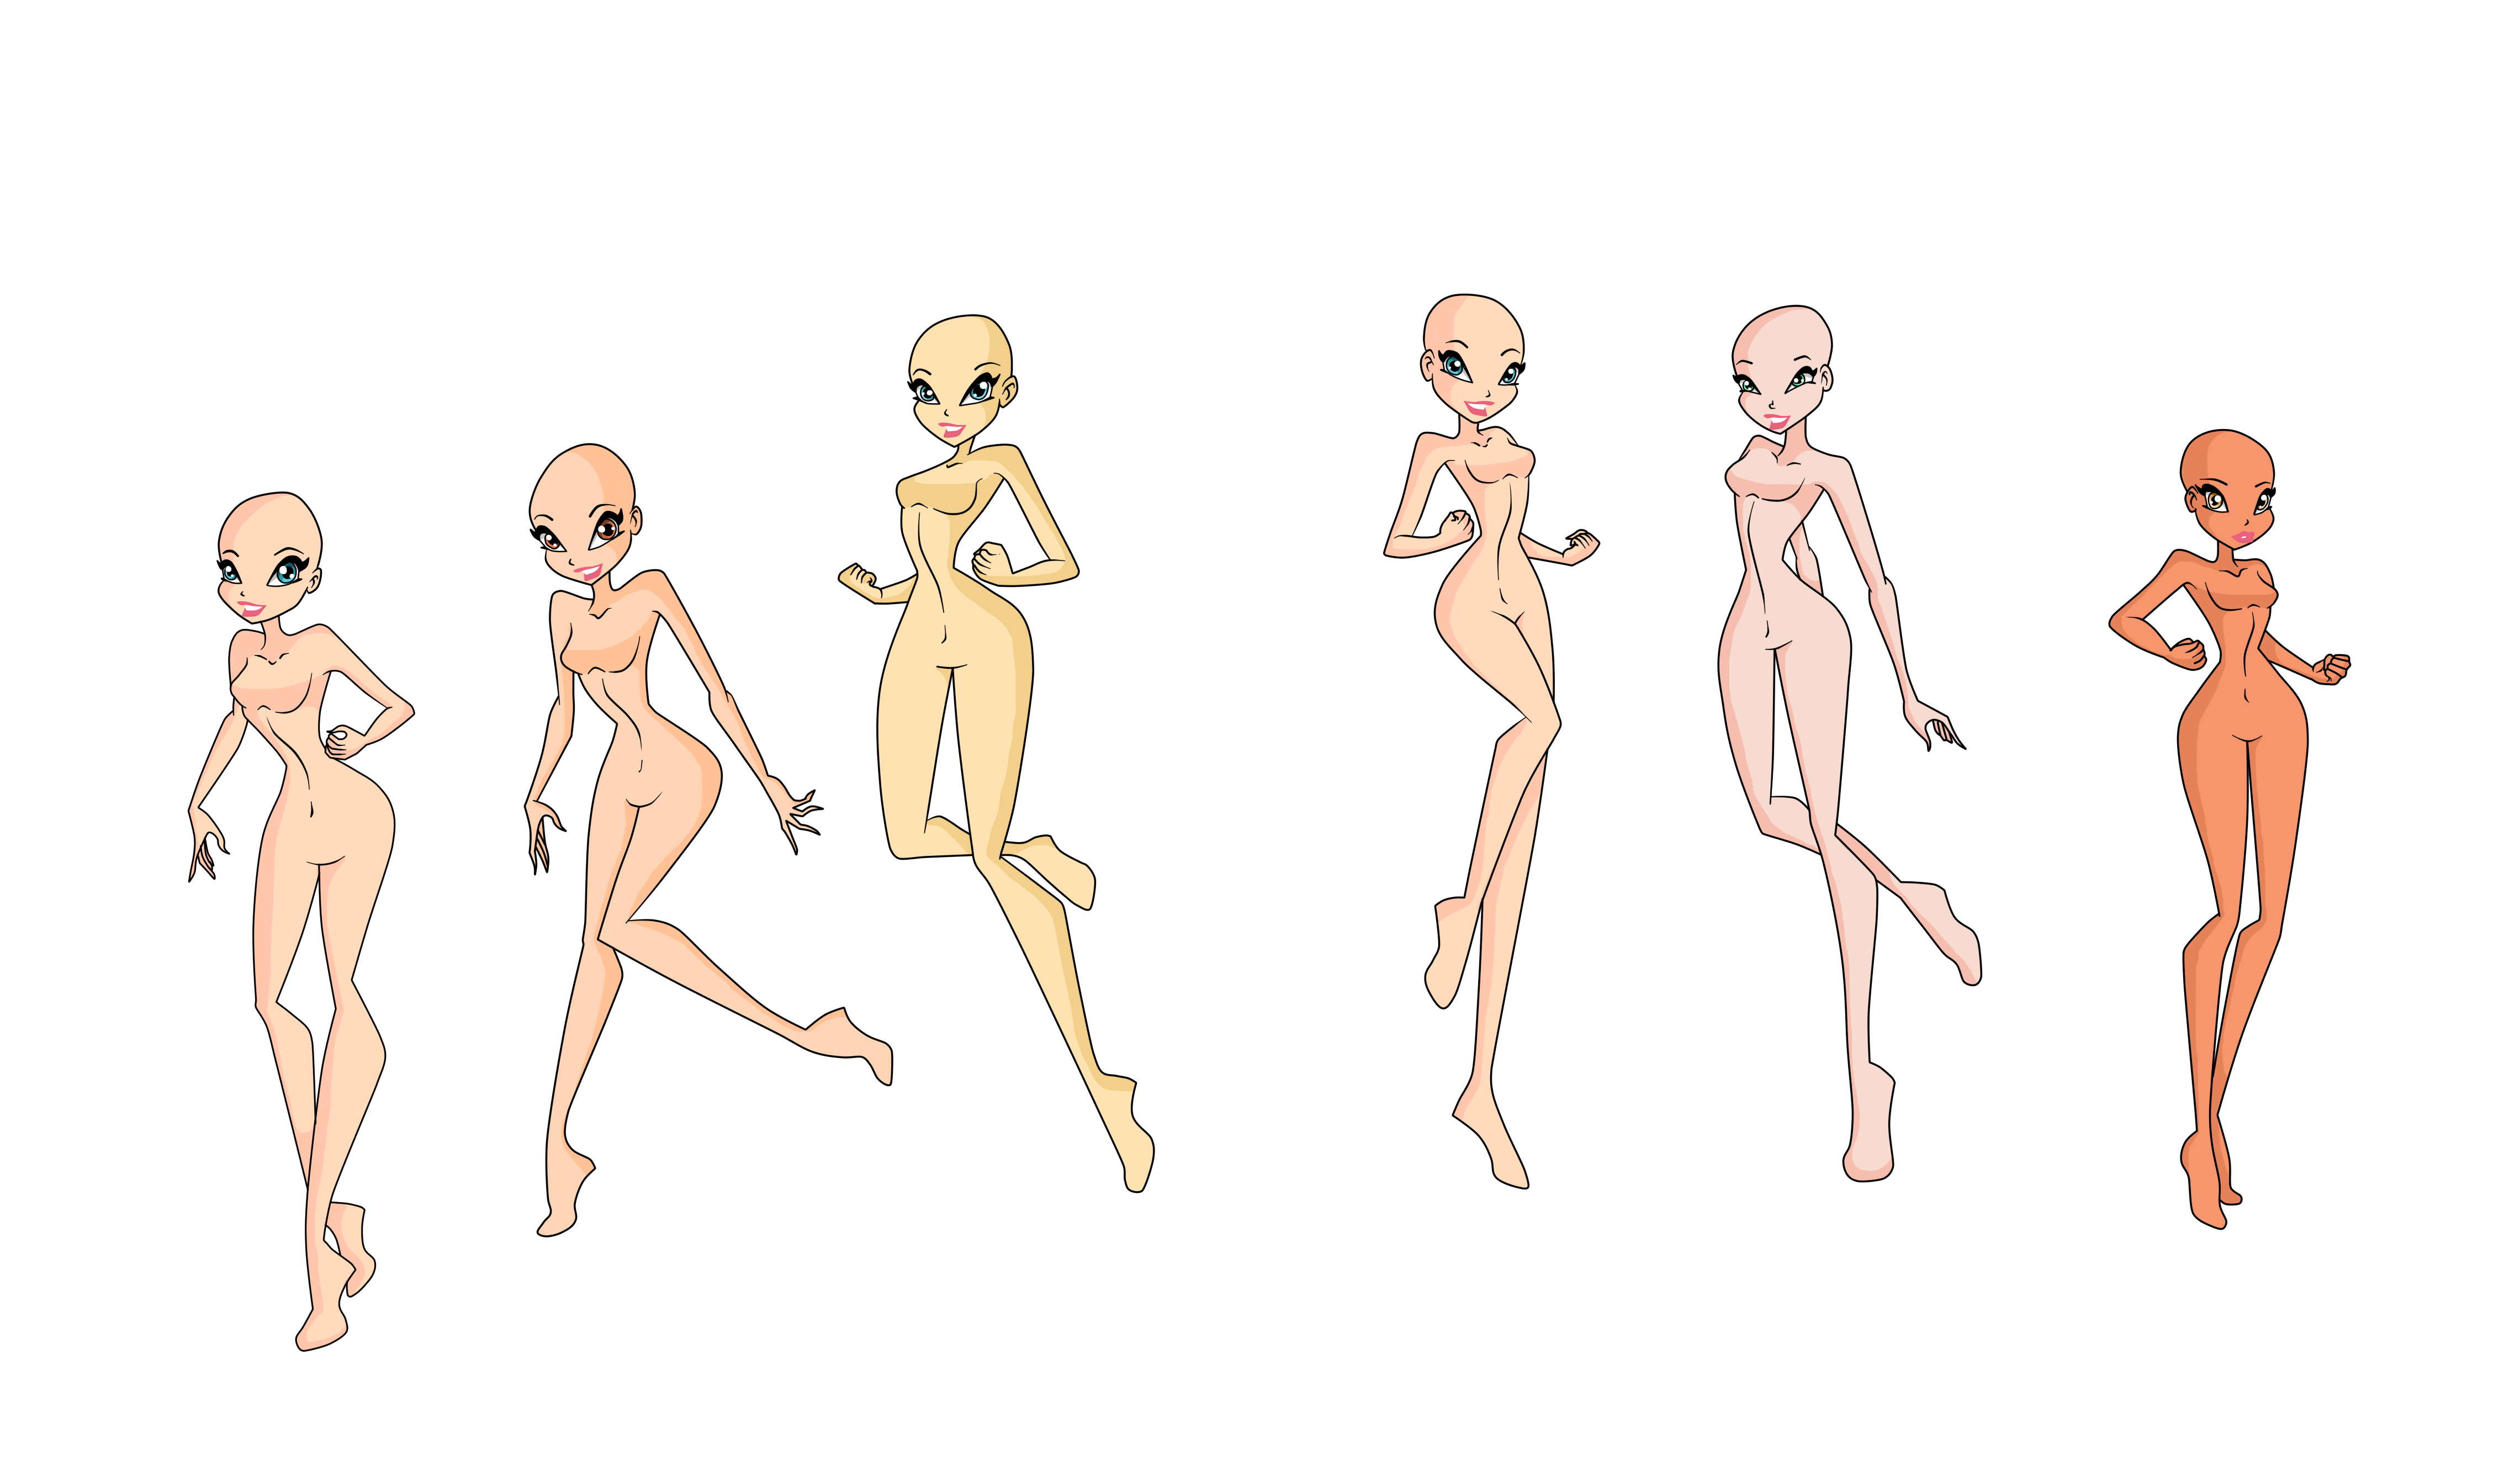 Base, nude woman character art transparent background png clipart